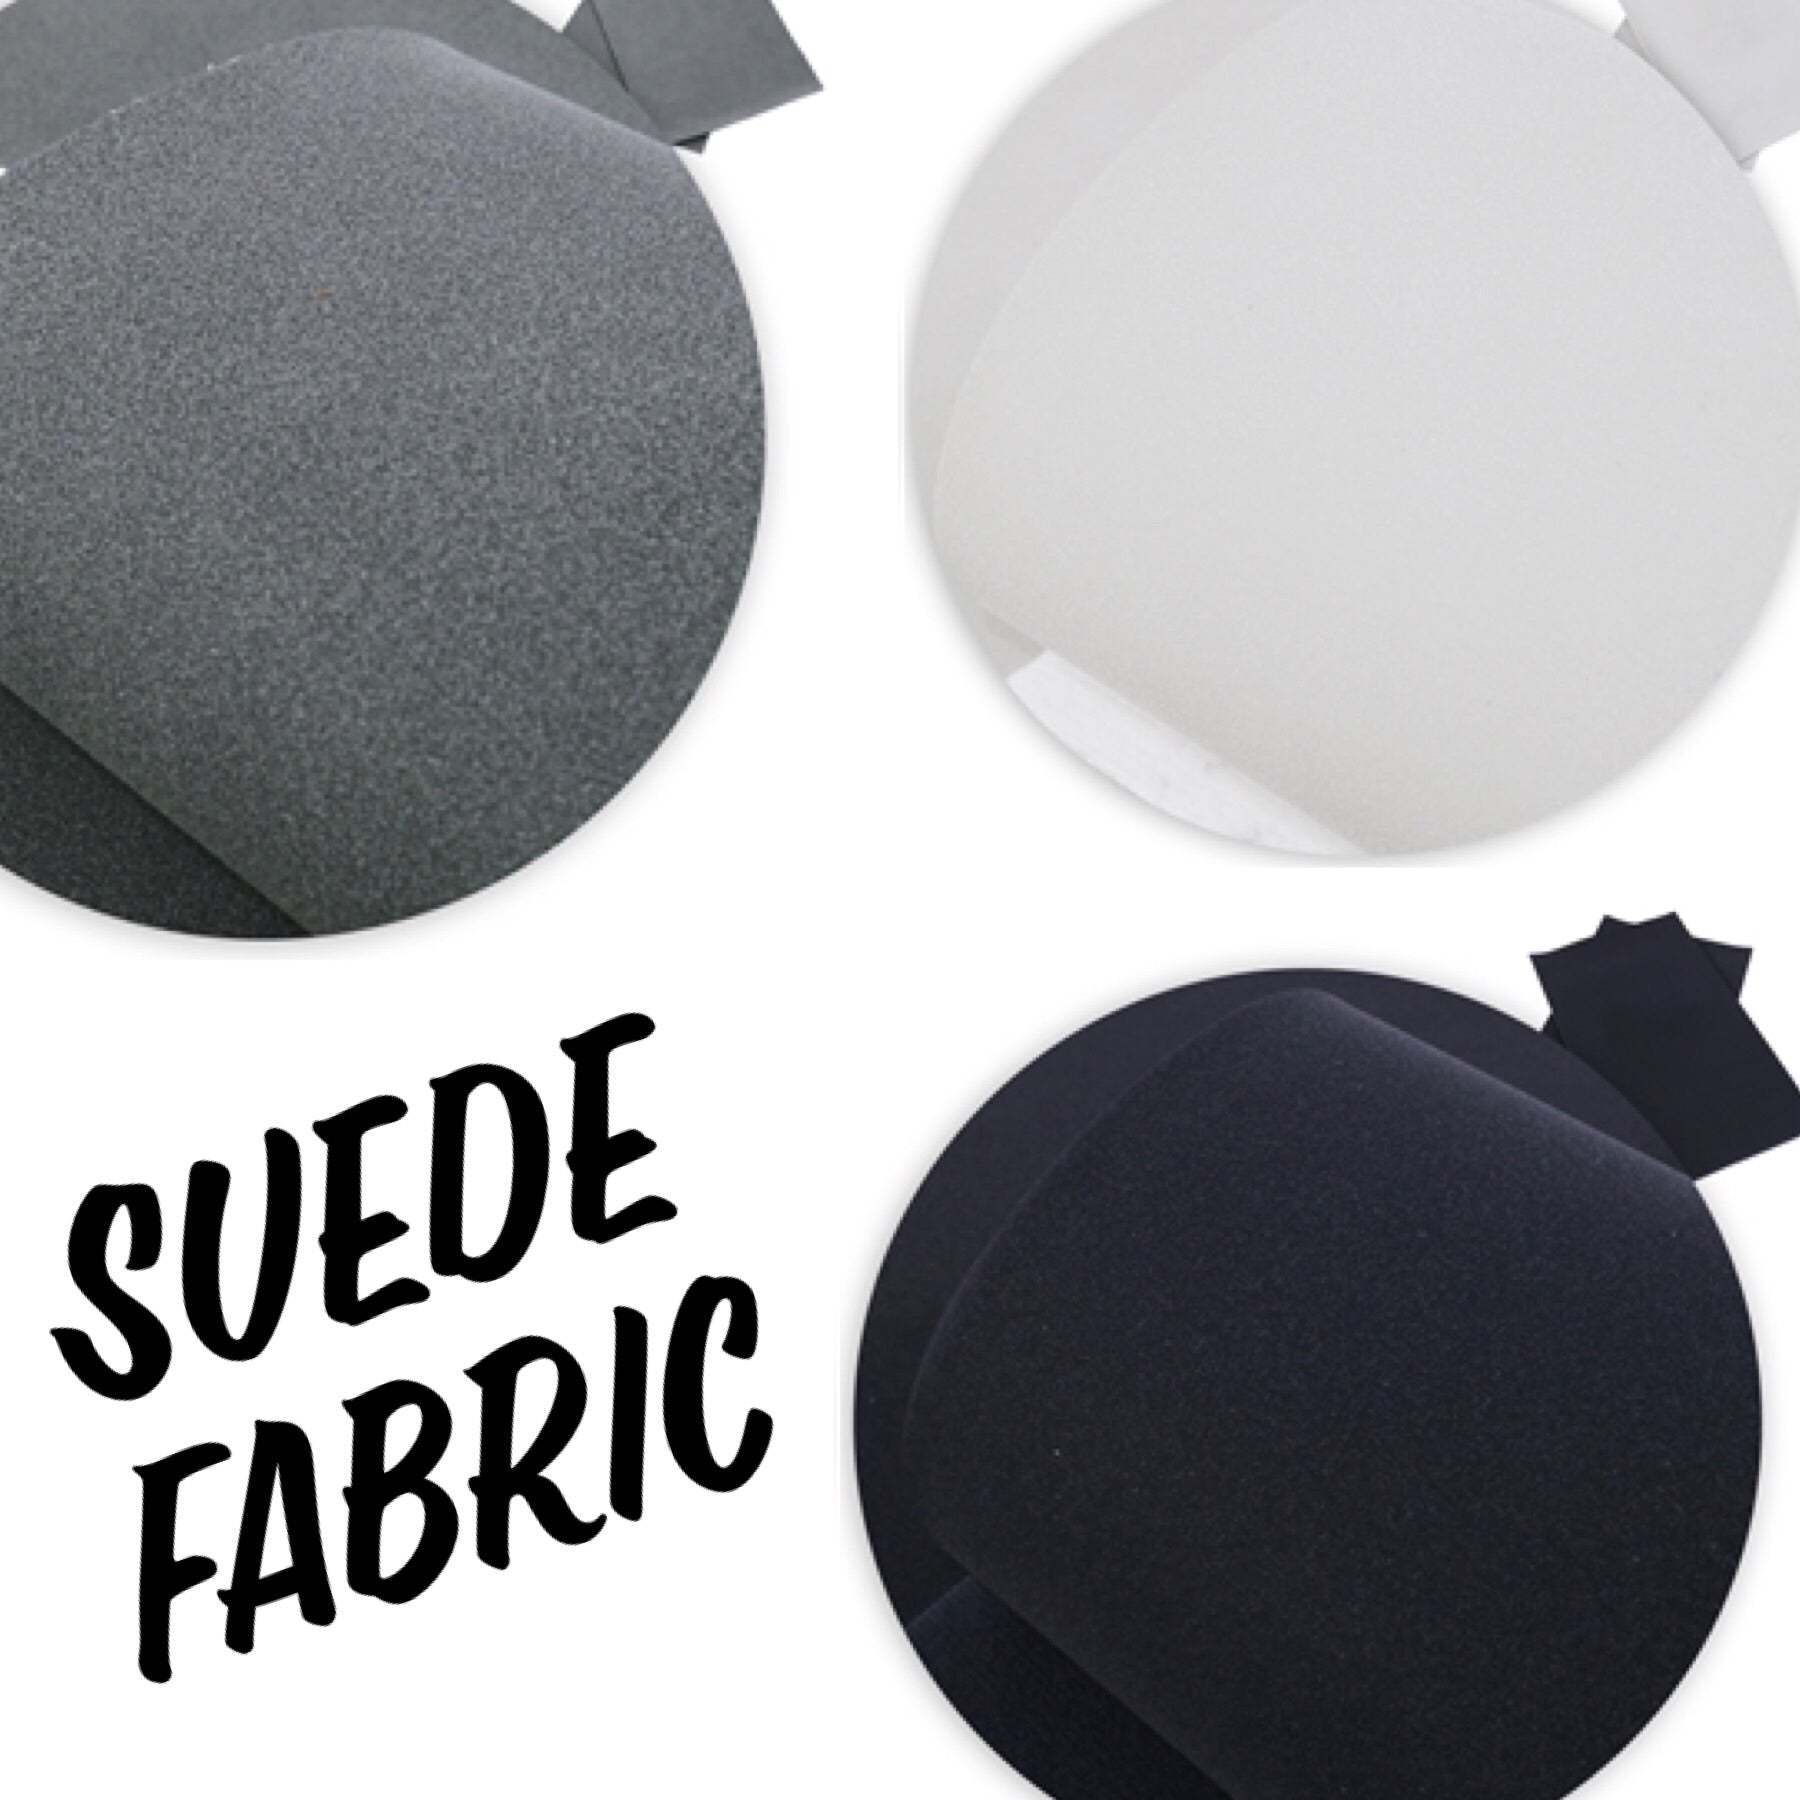 Suedette fabric A4 3 colours available